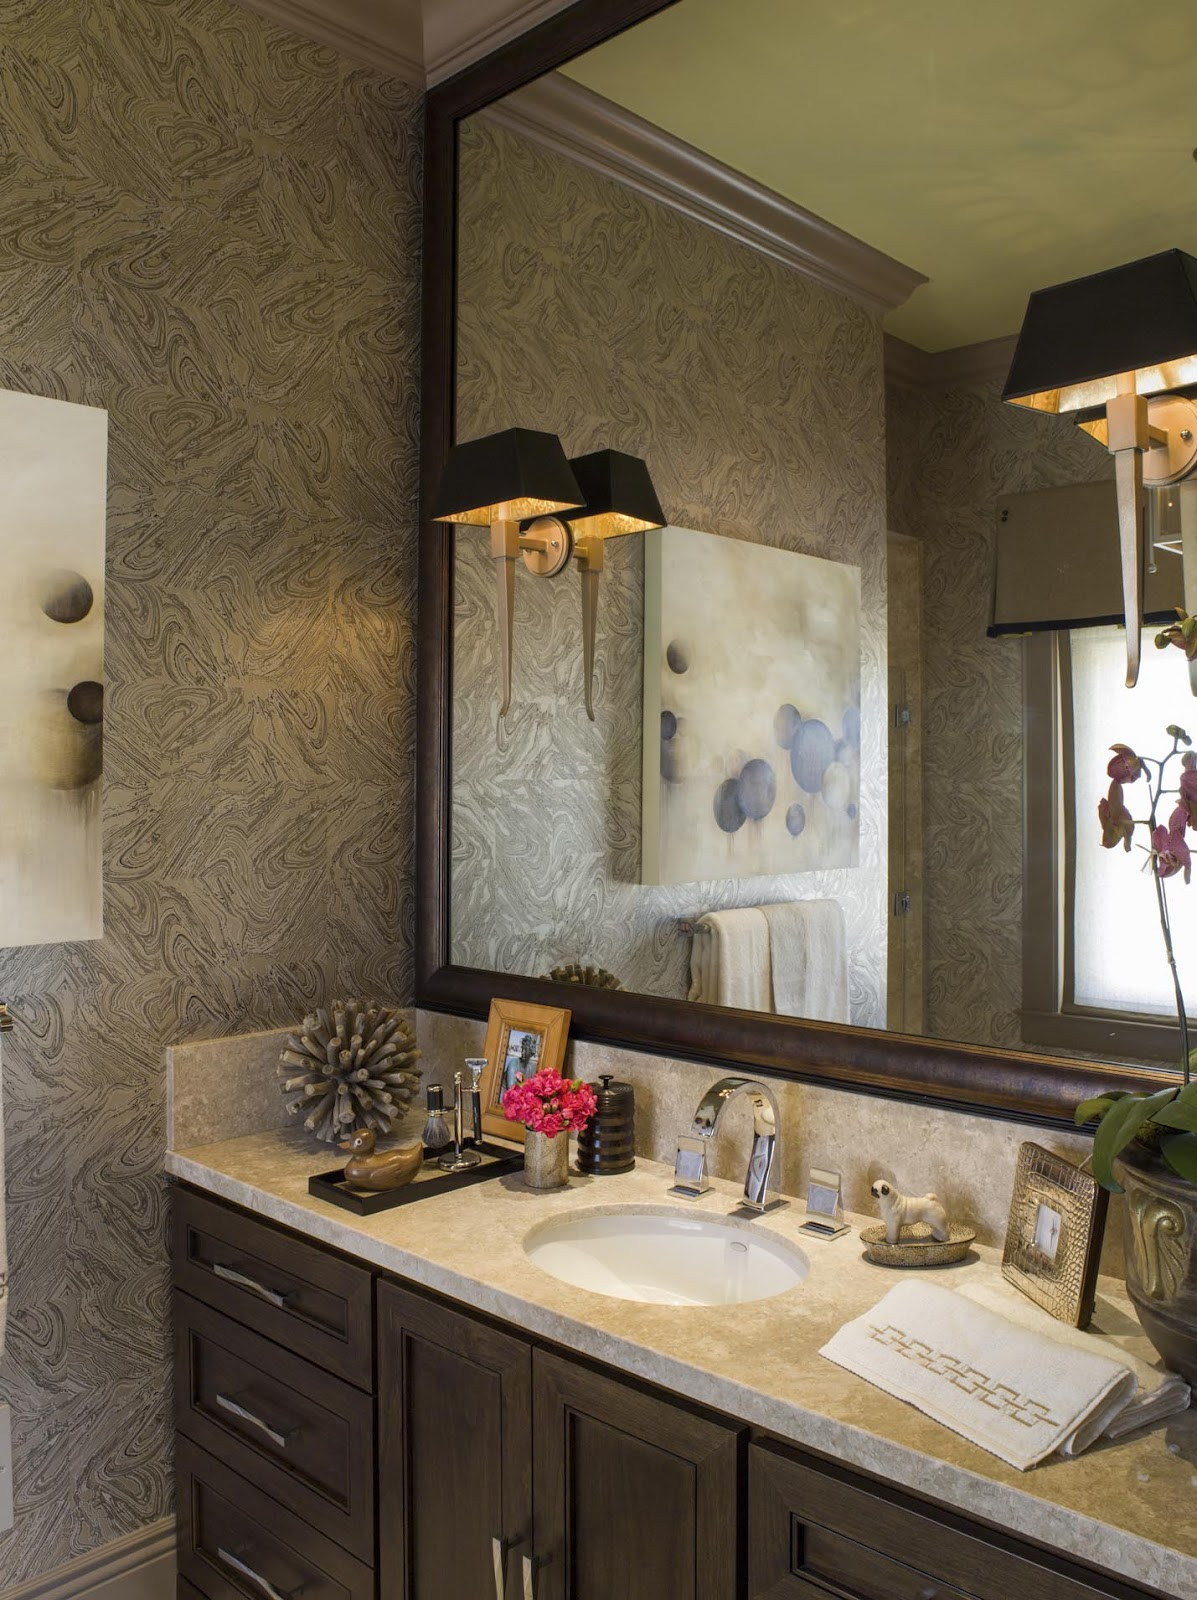 Bathroom wallpaper ideas bathroom wallpaper designs for Bathroom style ideas